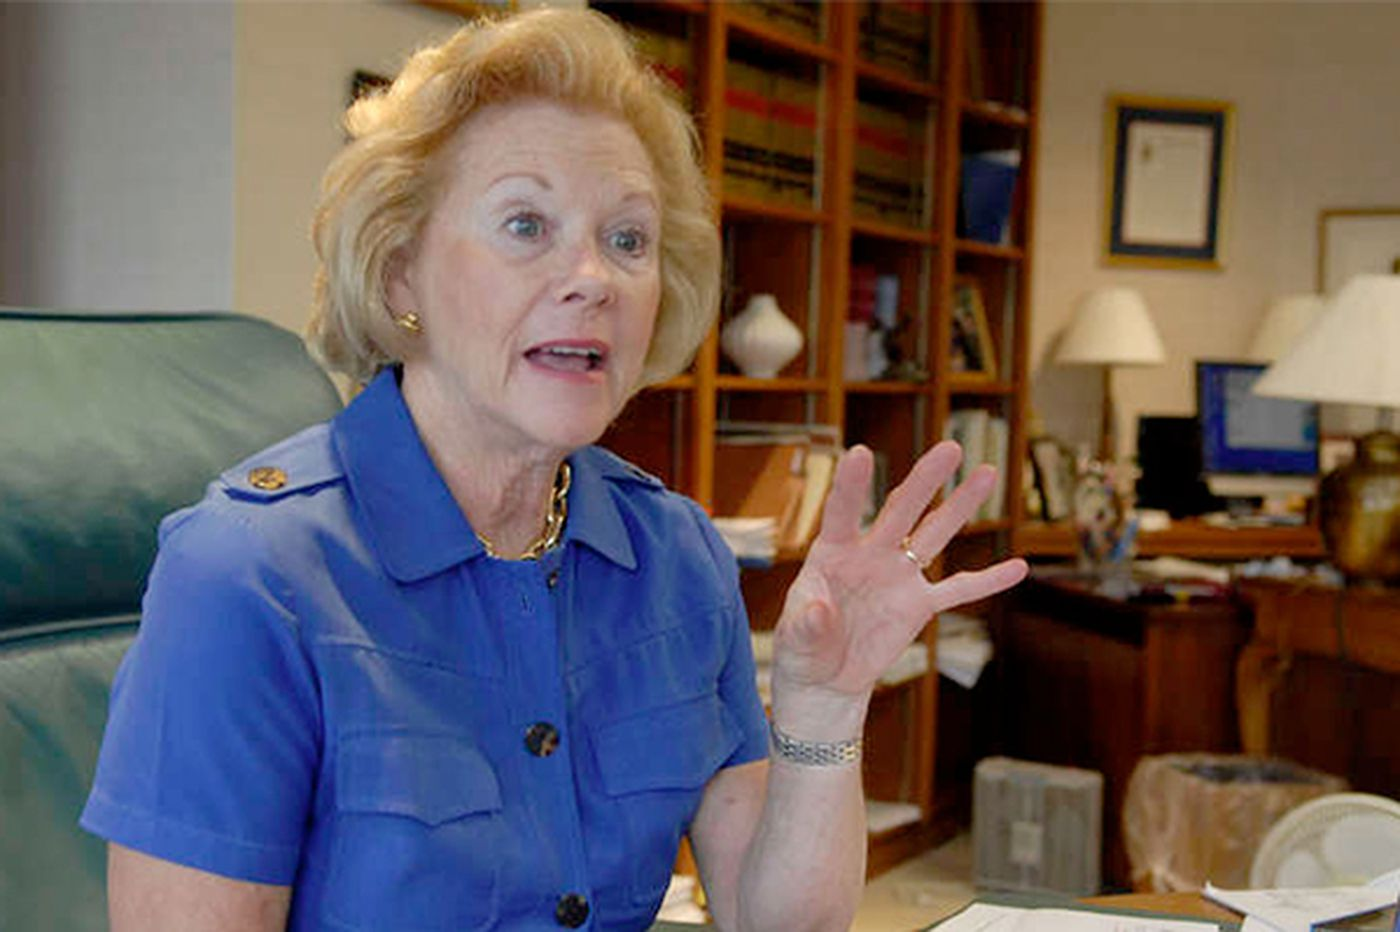 Midge Rendell talks about life as a judge